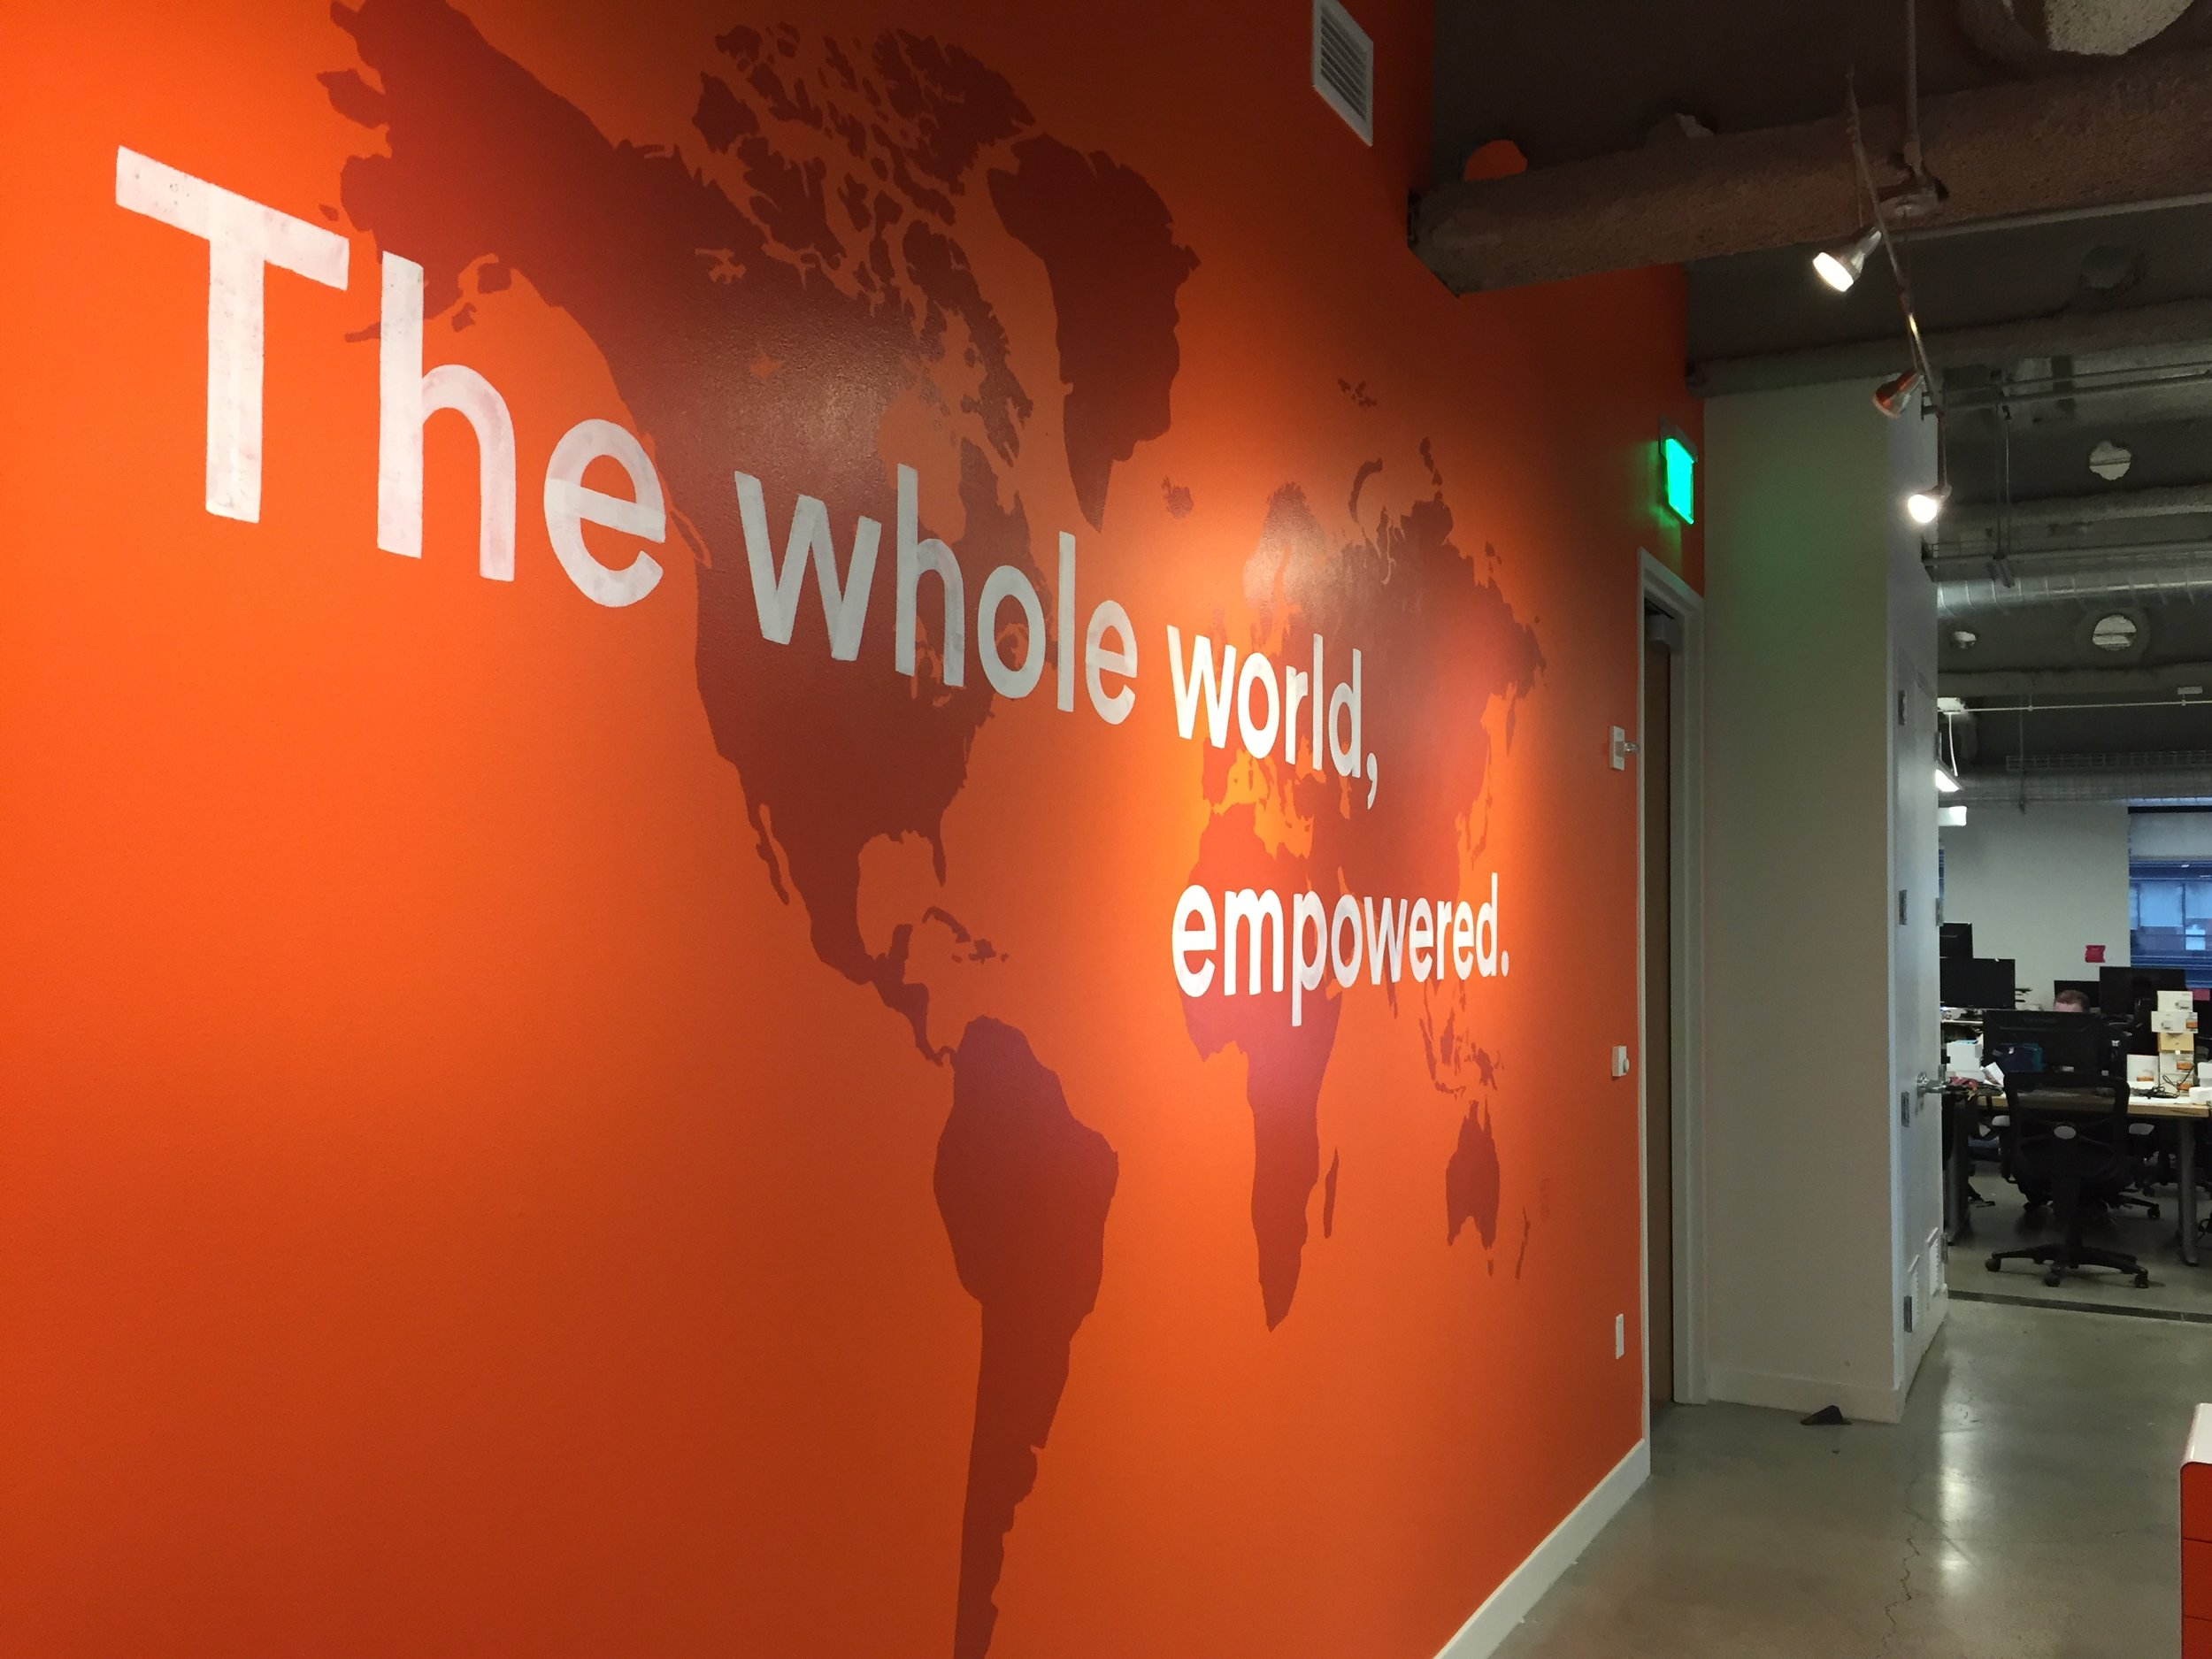 Office-commercial-mural-san-francisco-endless-wall-and-wall-mural-company_003.jpeg